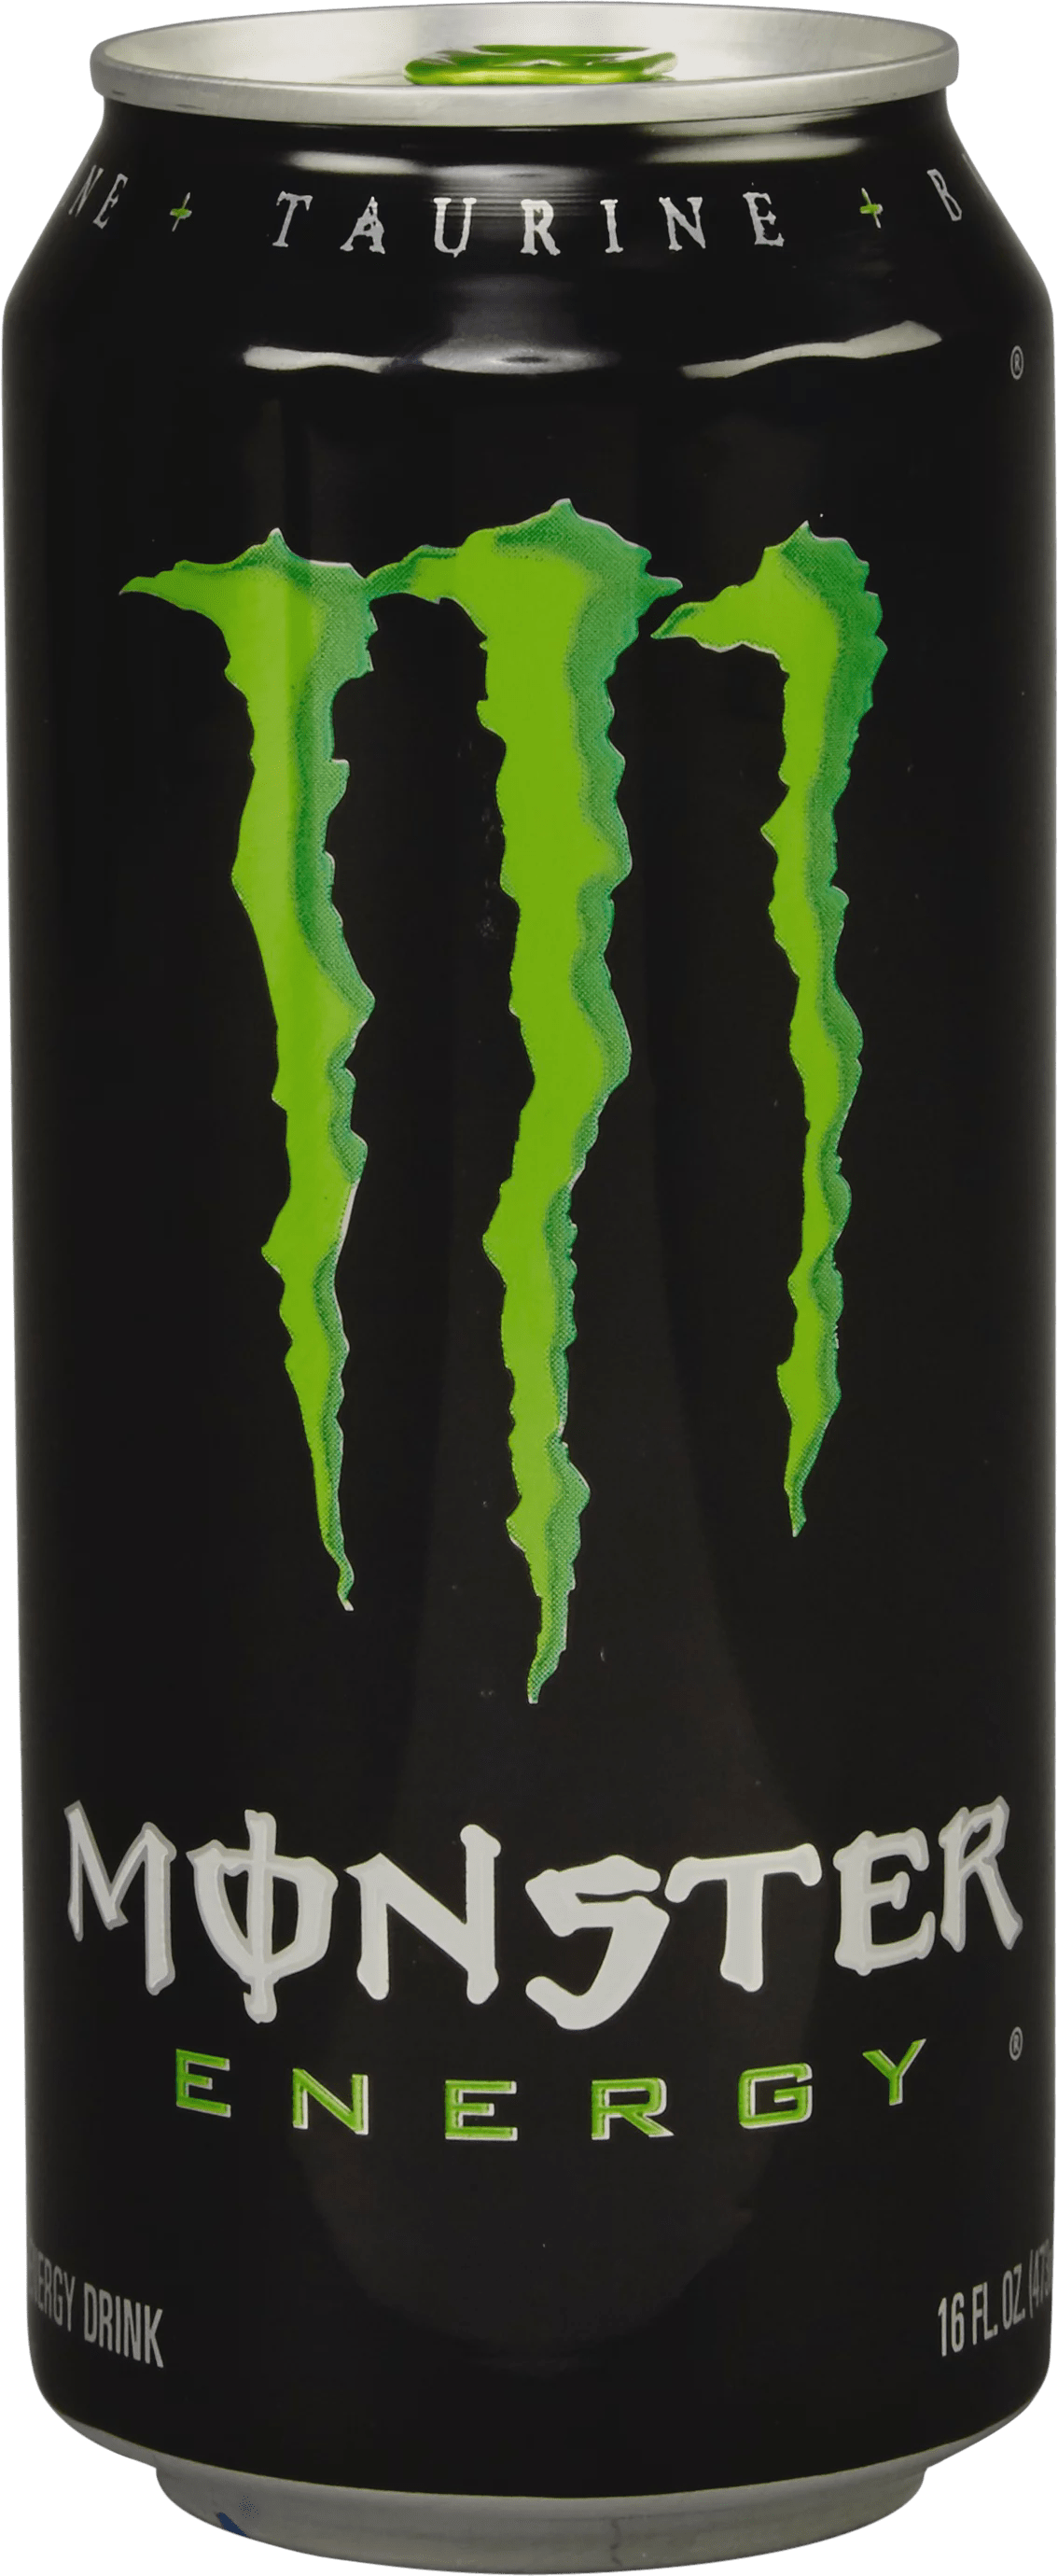 monster energy drink Monster energy drink decal for use outdoors on cars, windows, or other surfaces vinyl used for decals is high quality outdoor rated vinyl all vinyl decals are made in the usa.